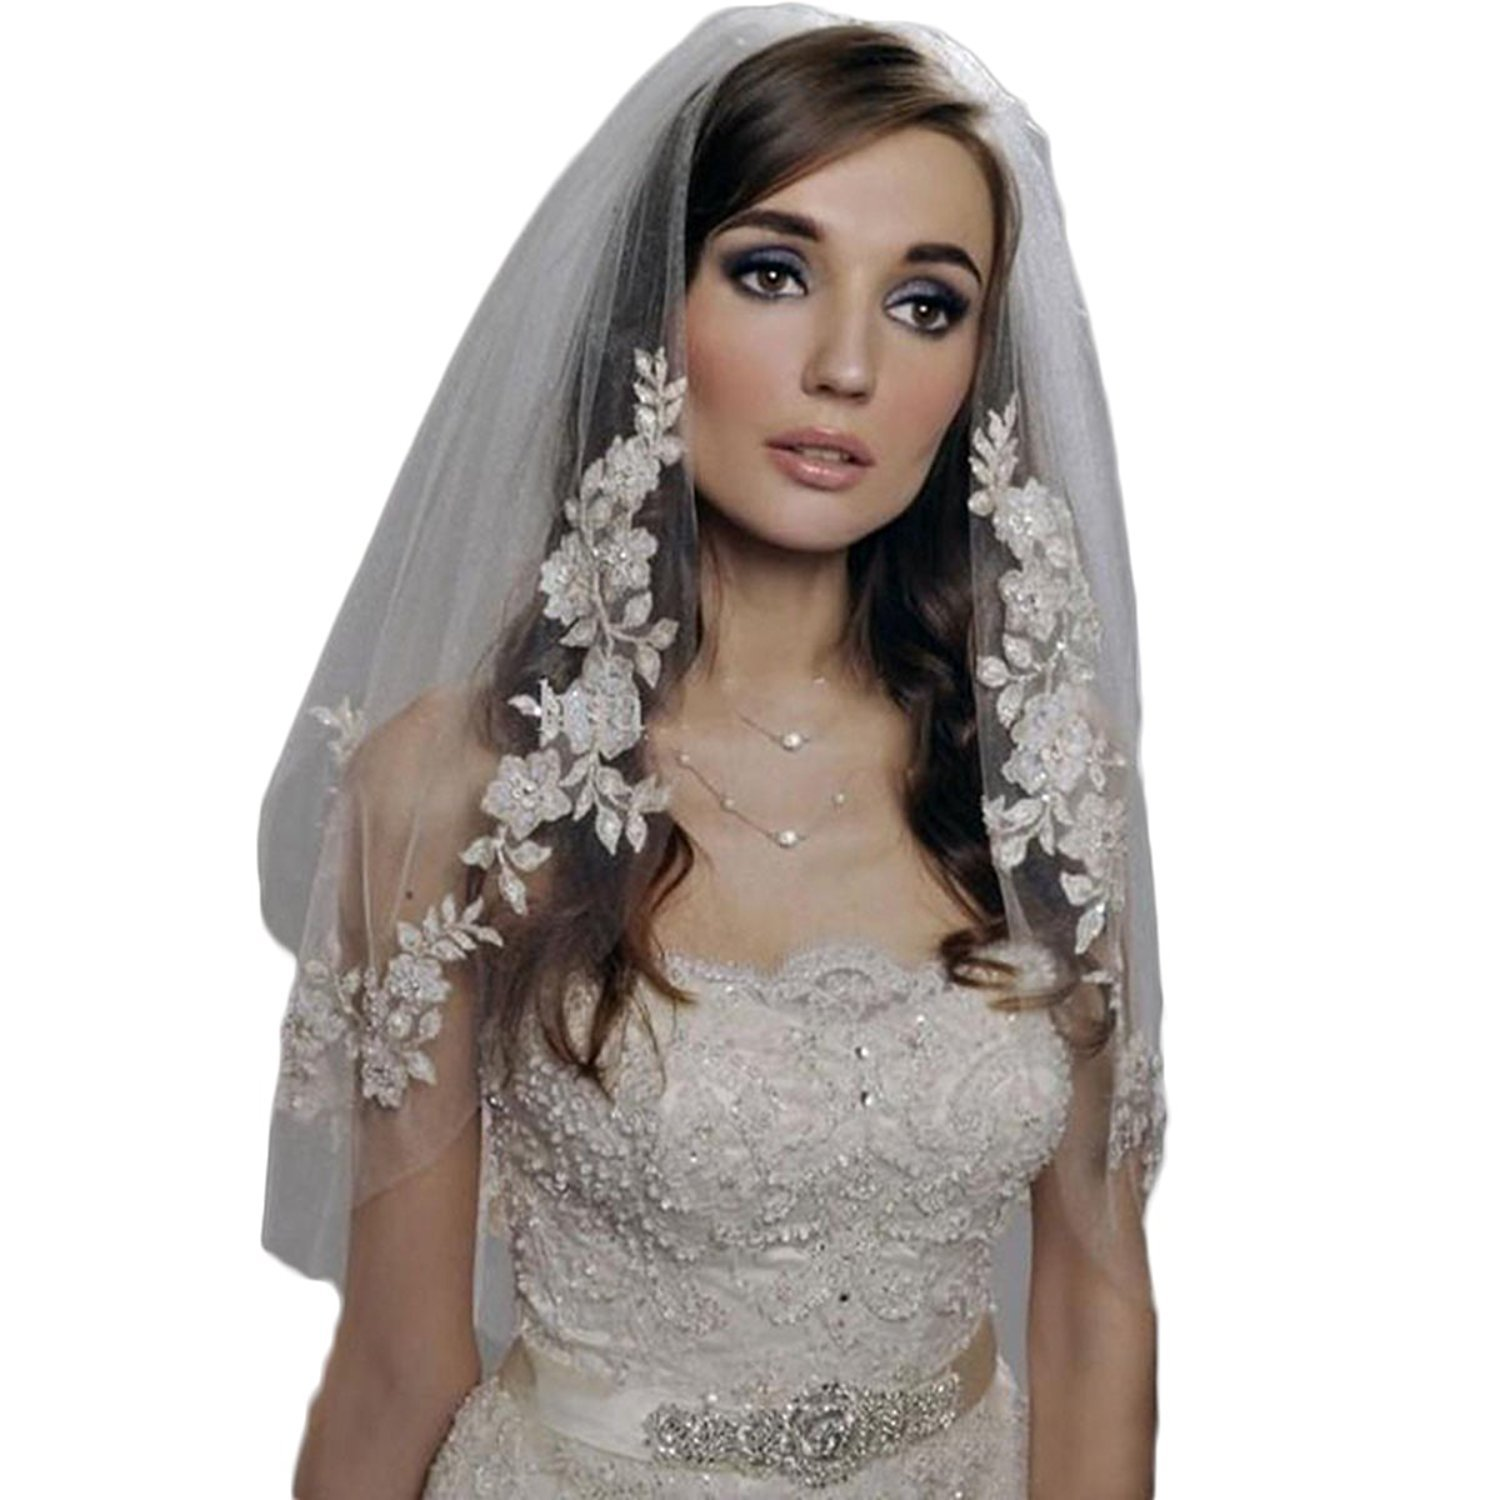 JQLD Beaded Lace Edge Short Veils with Comb Two Tiers Tulle Wedding Bridal Veil (Small, Ivory)